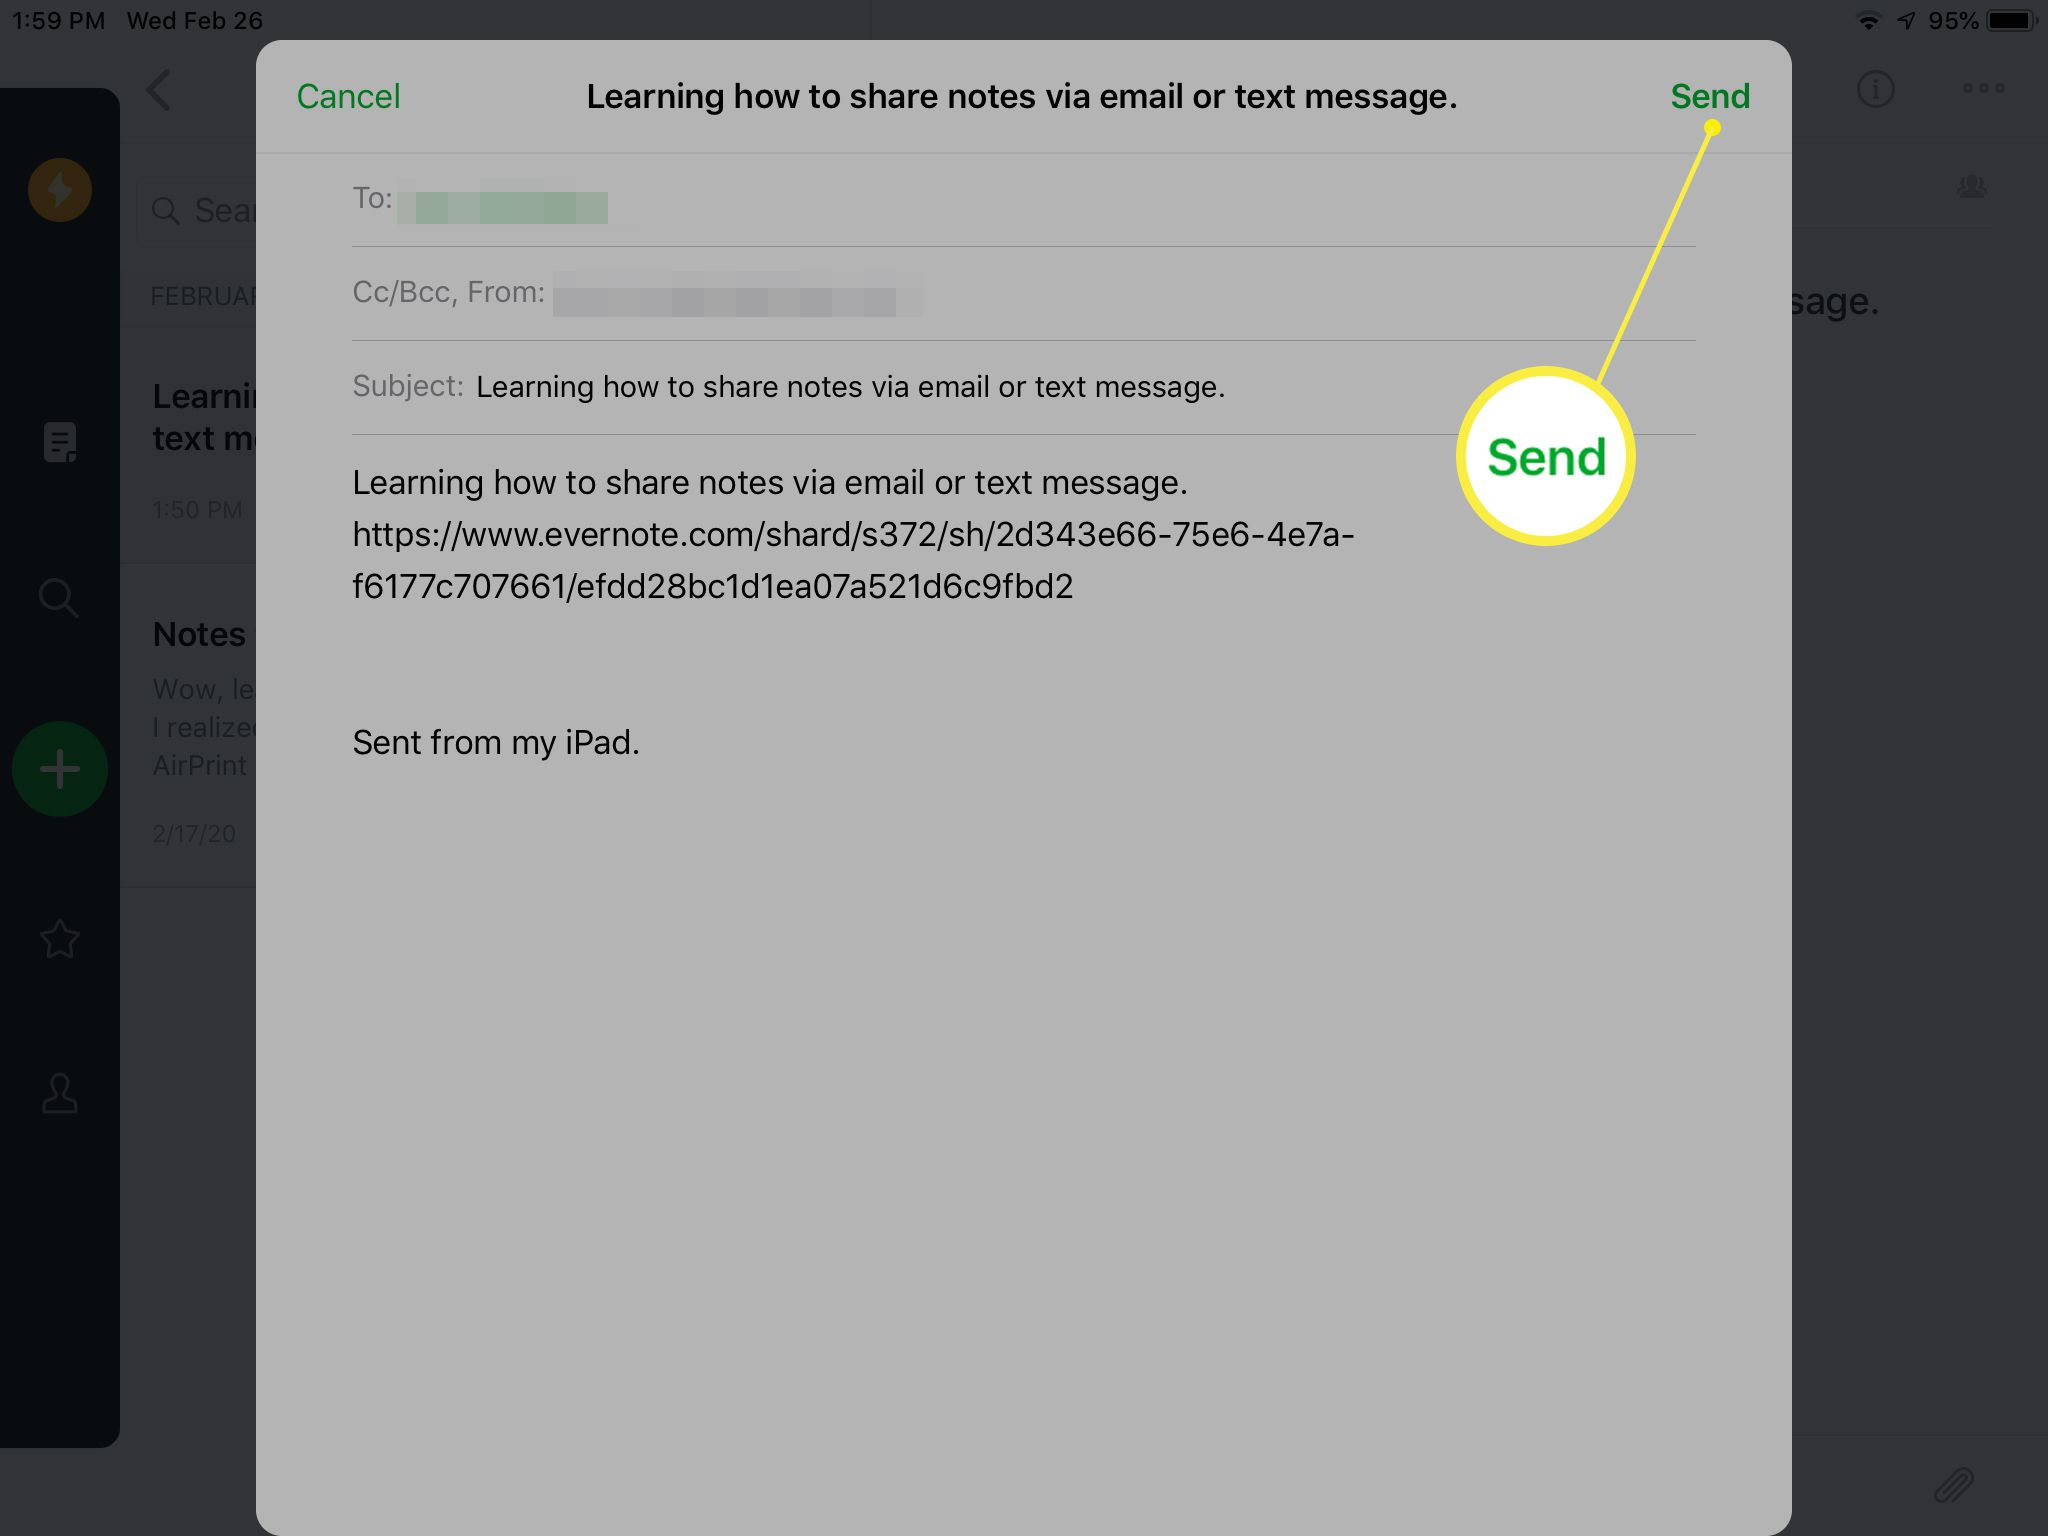 Email containing link sent from Evernote